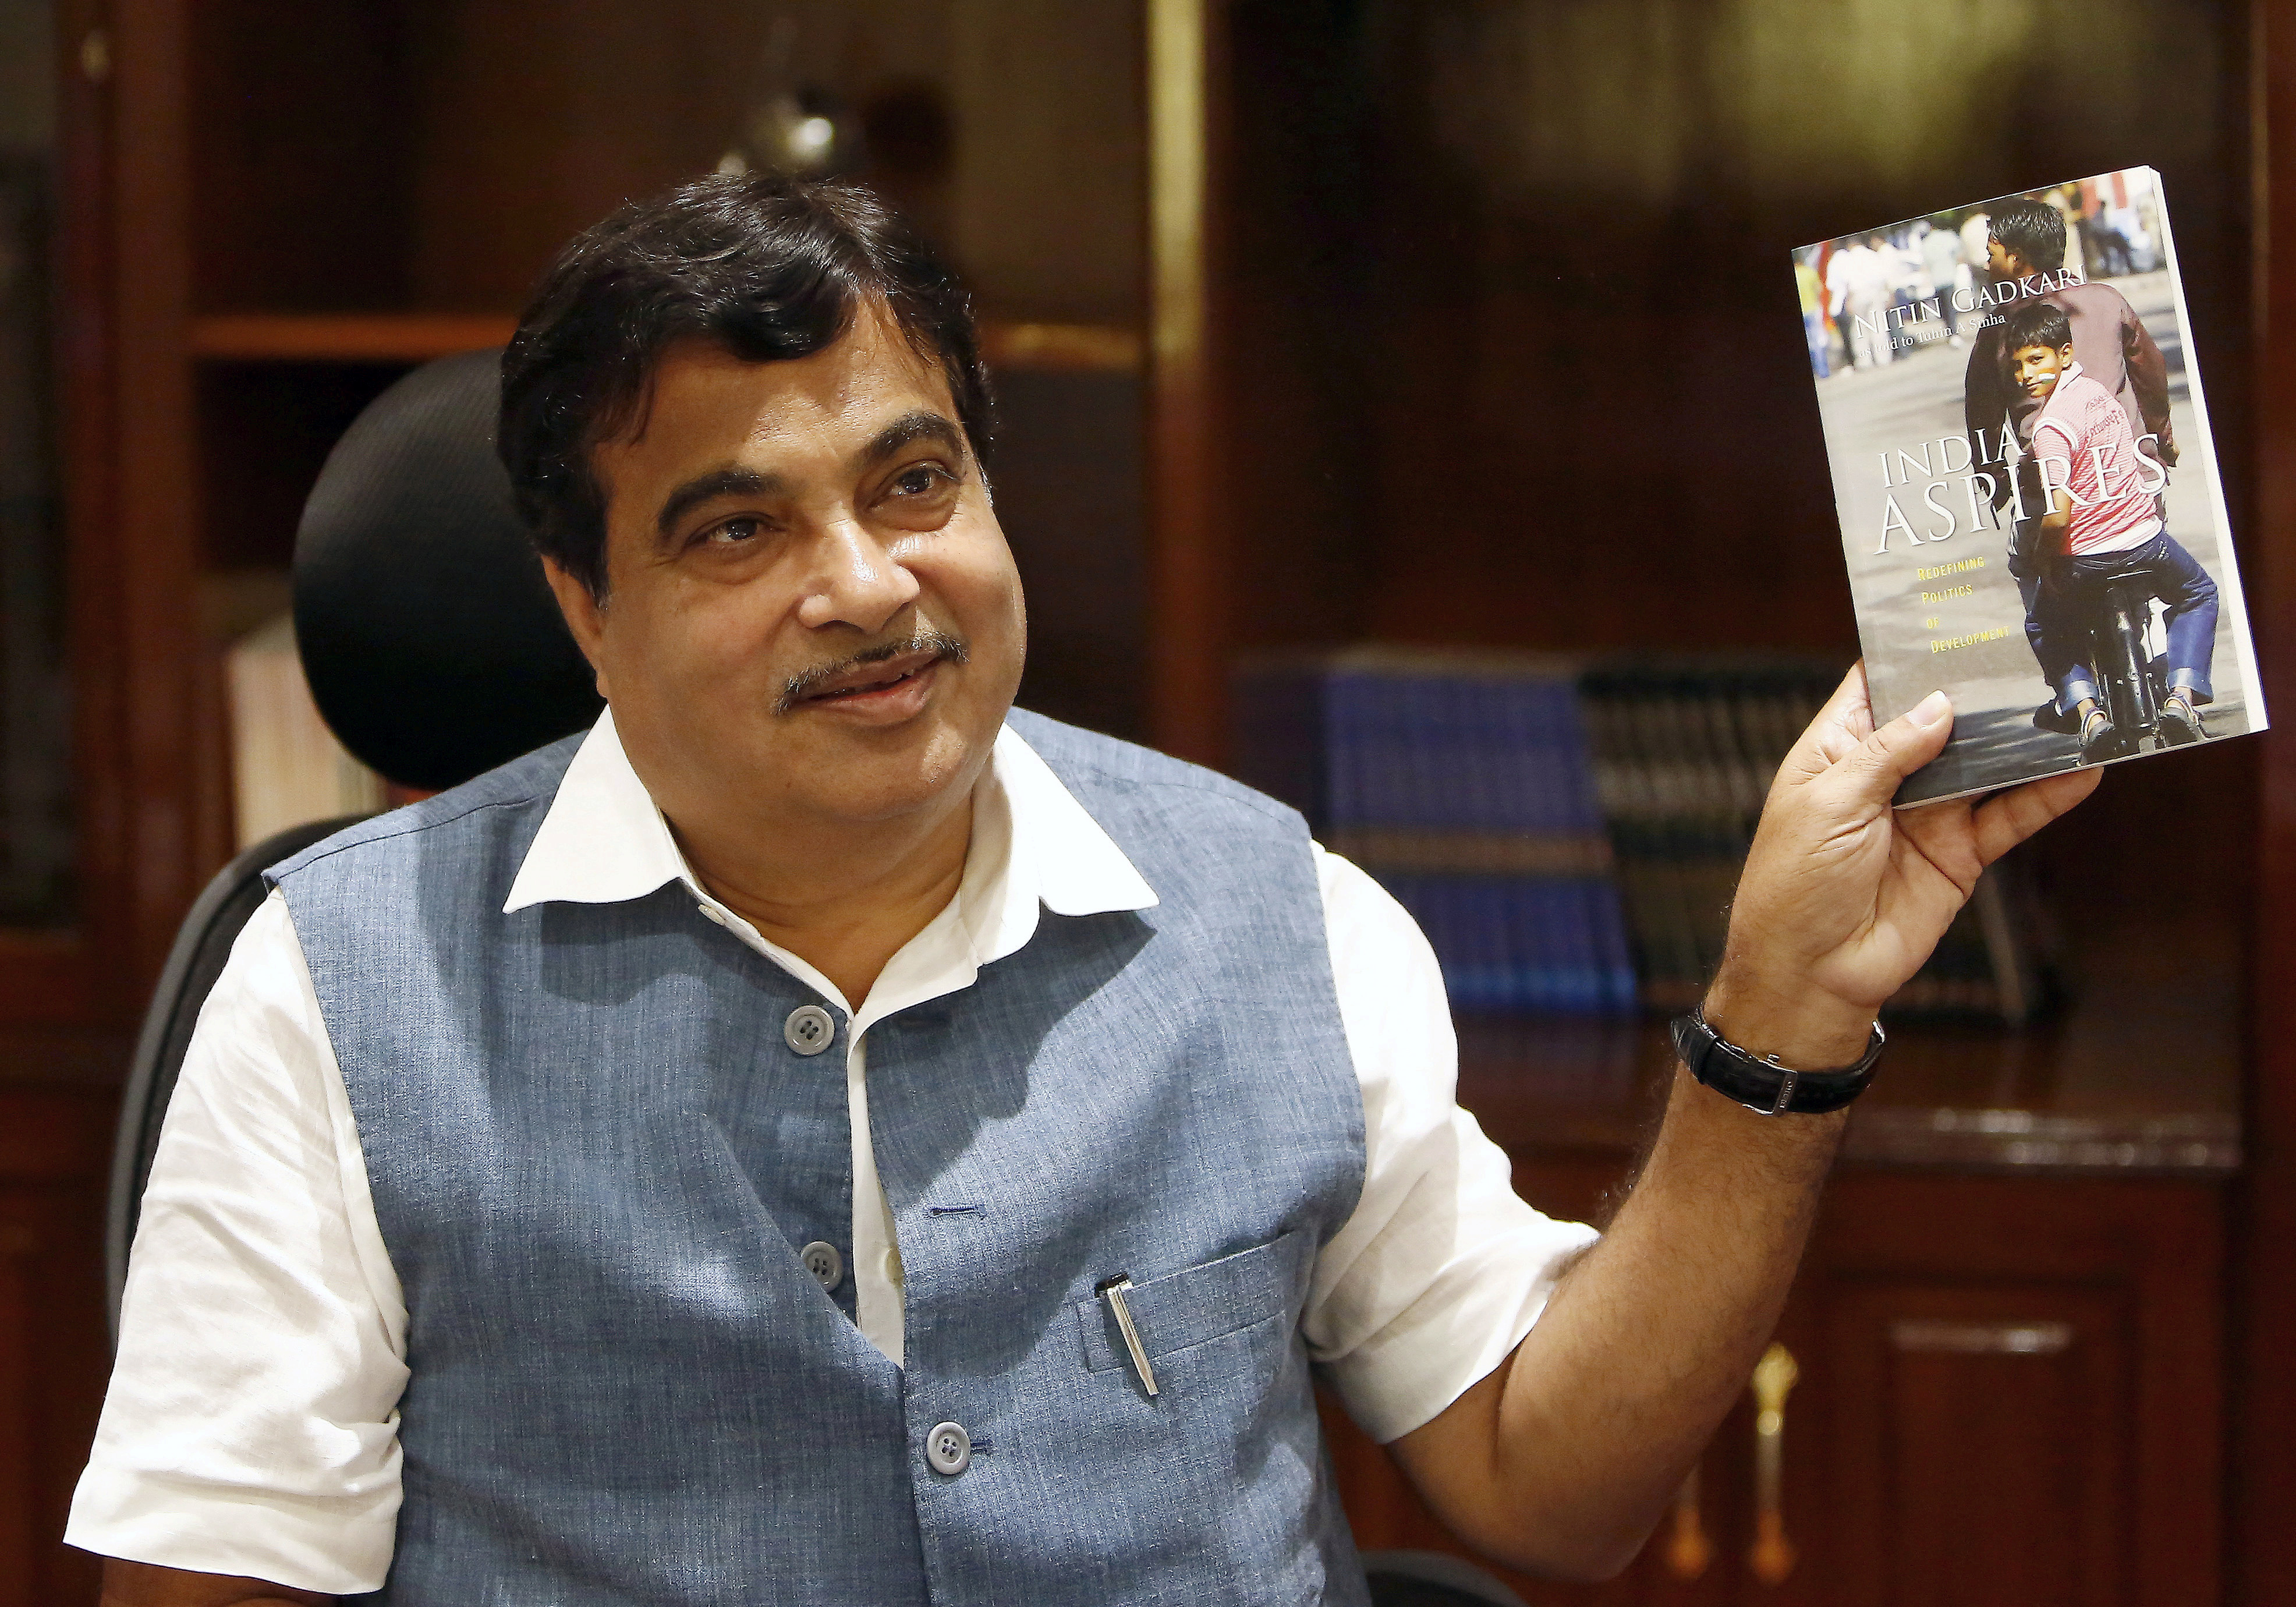 India's Transport and Shipping Minister Nitin Gadkari displays a book written by him at his office in New Delhi, India August 26, 2015. REUTERS/Anindito Mukherjee/File Photo